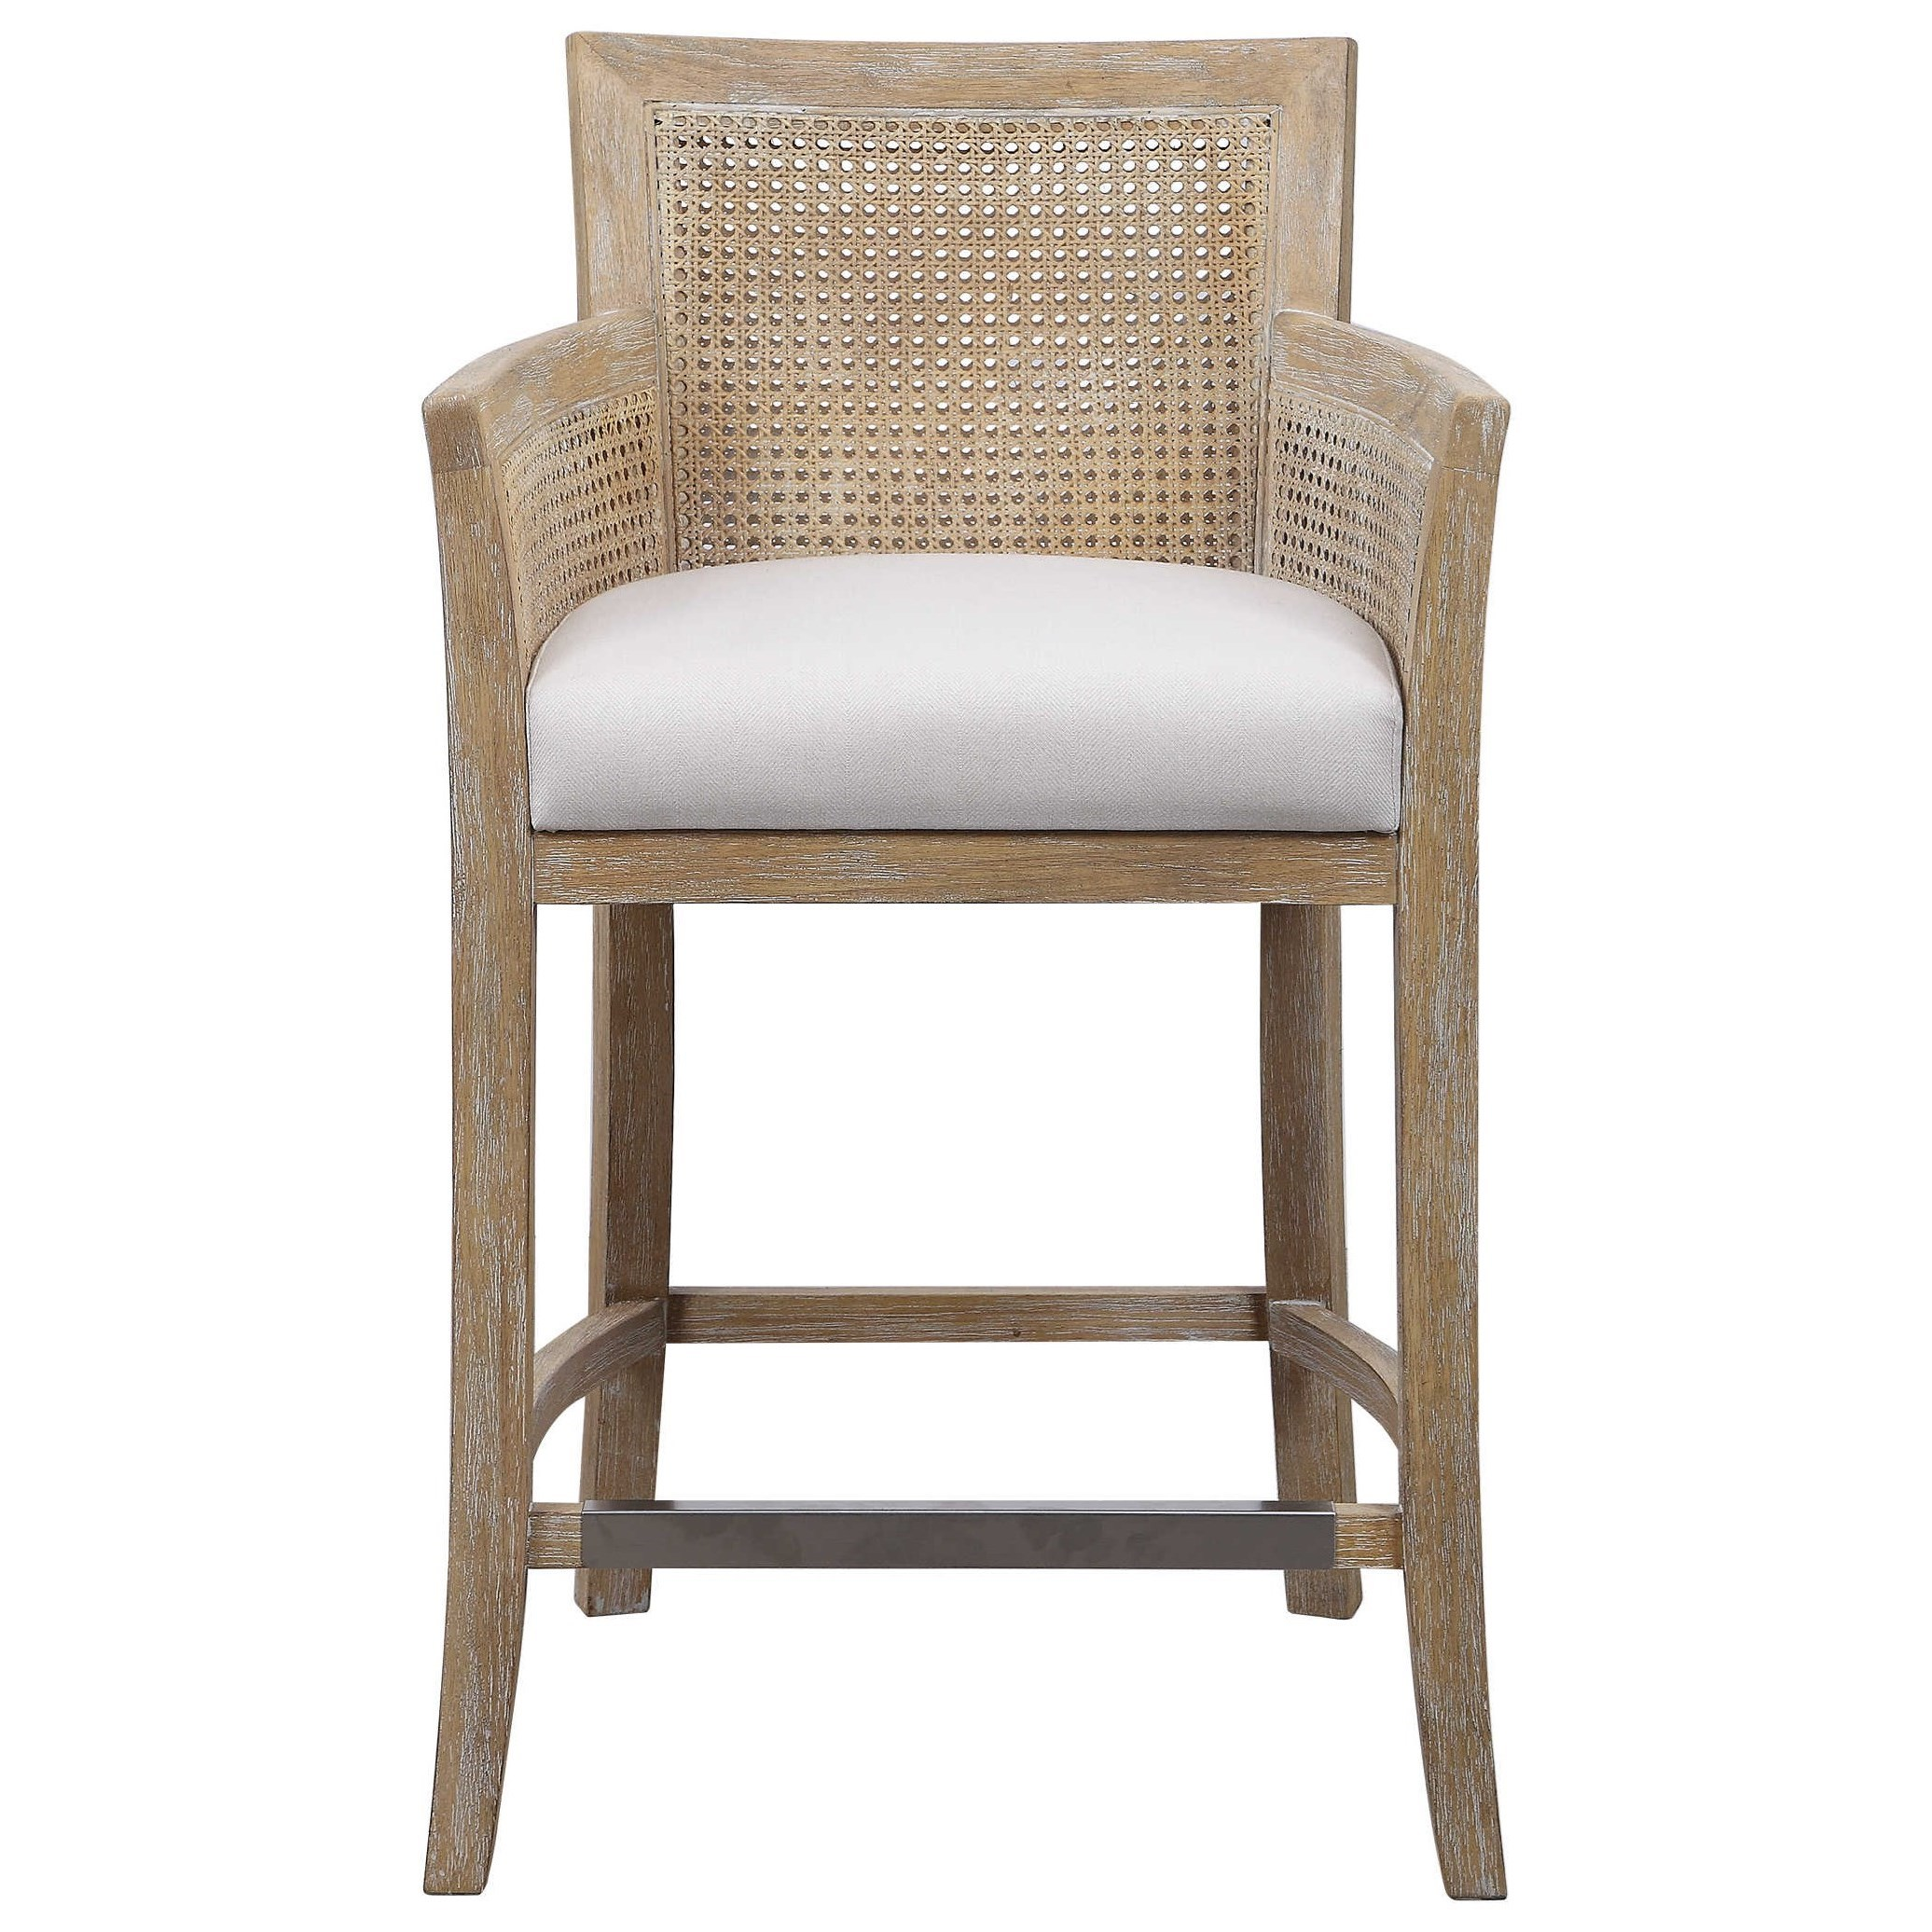 Accent Furniture - Stools Encore Counter Stool by Uttermost at Factory Direct Furniture